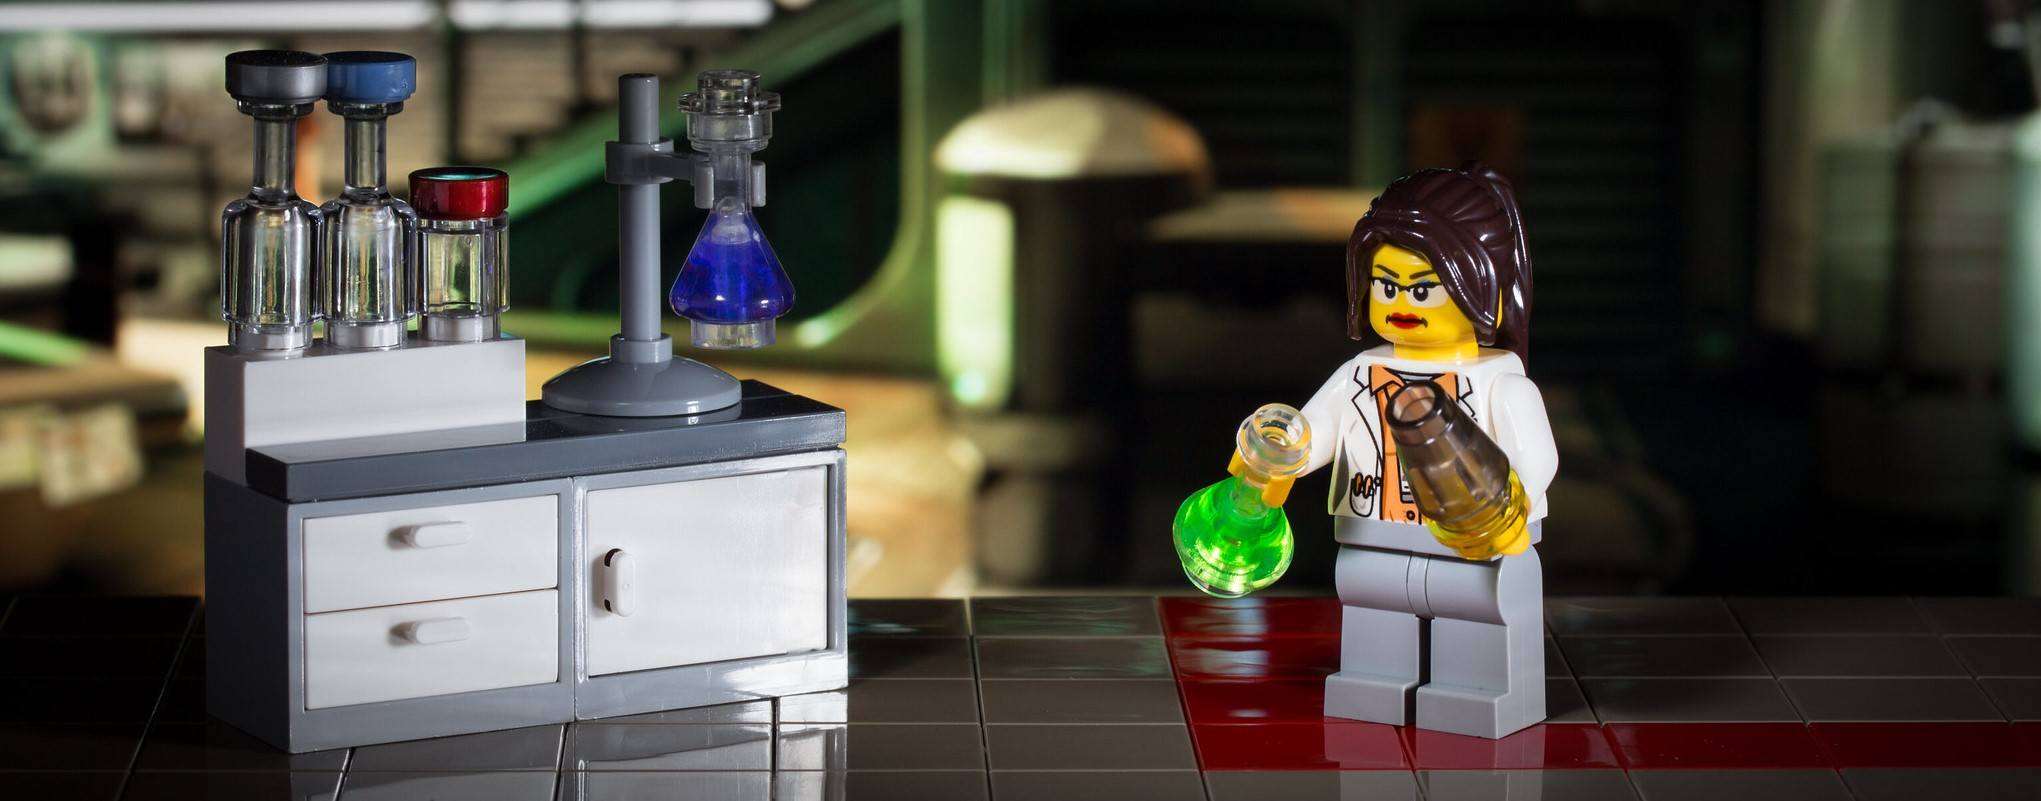 This photo shows a LEGO in a laboratory hopefully working on a cure for COVID-19.